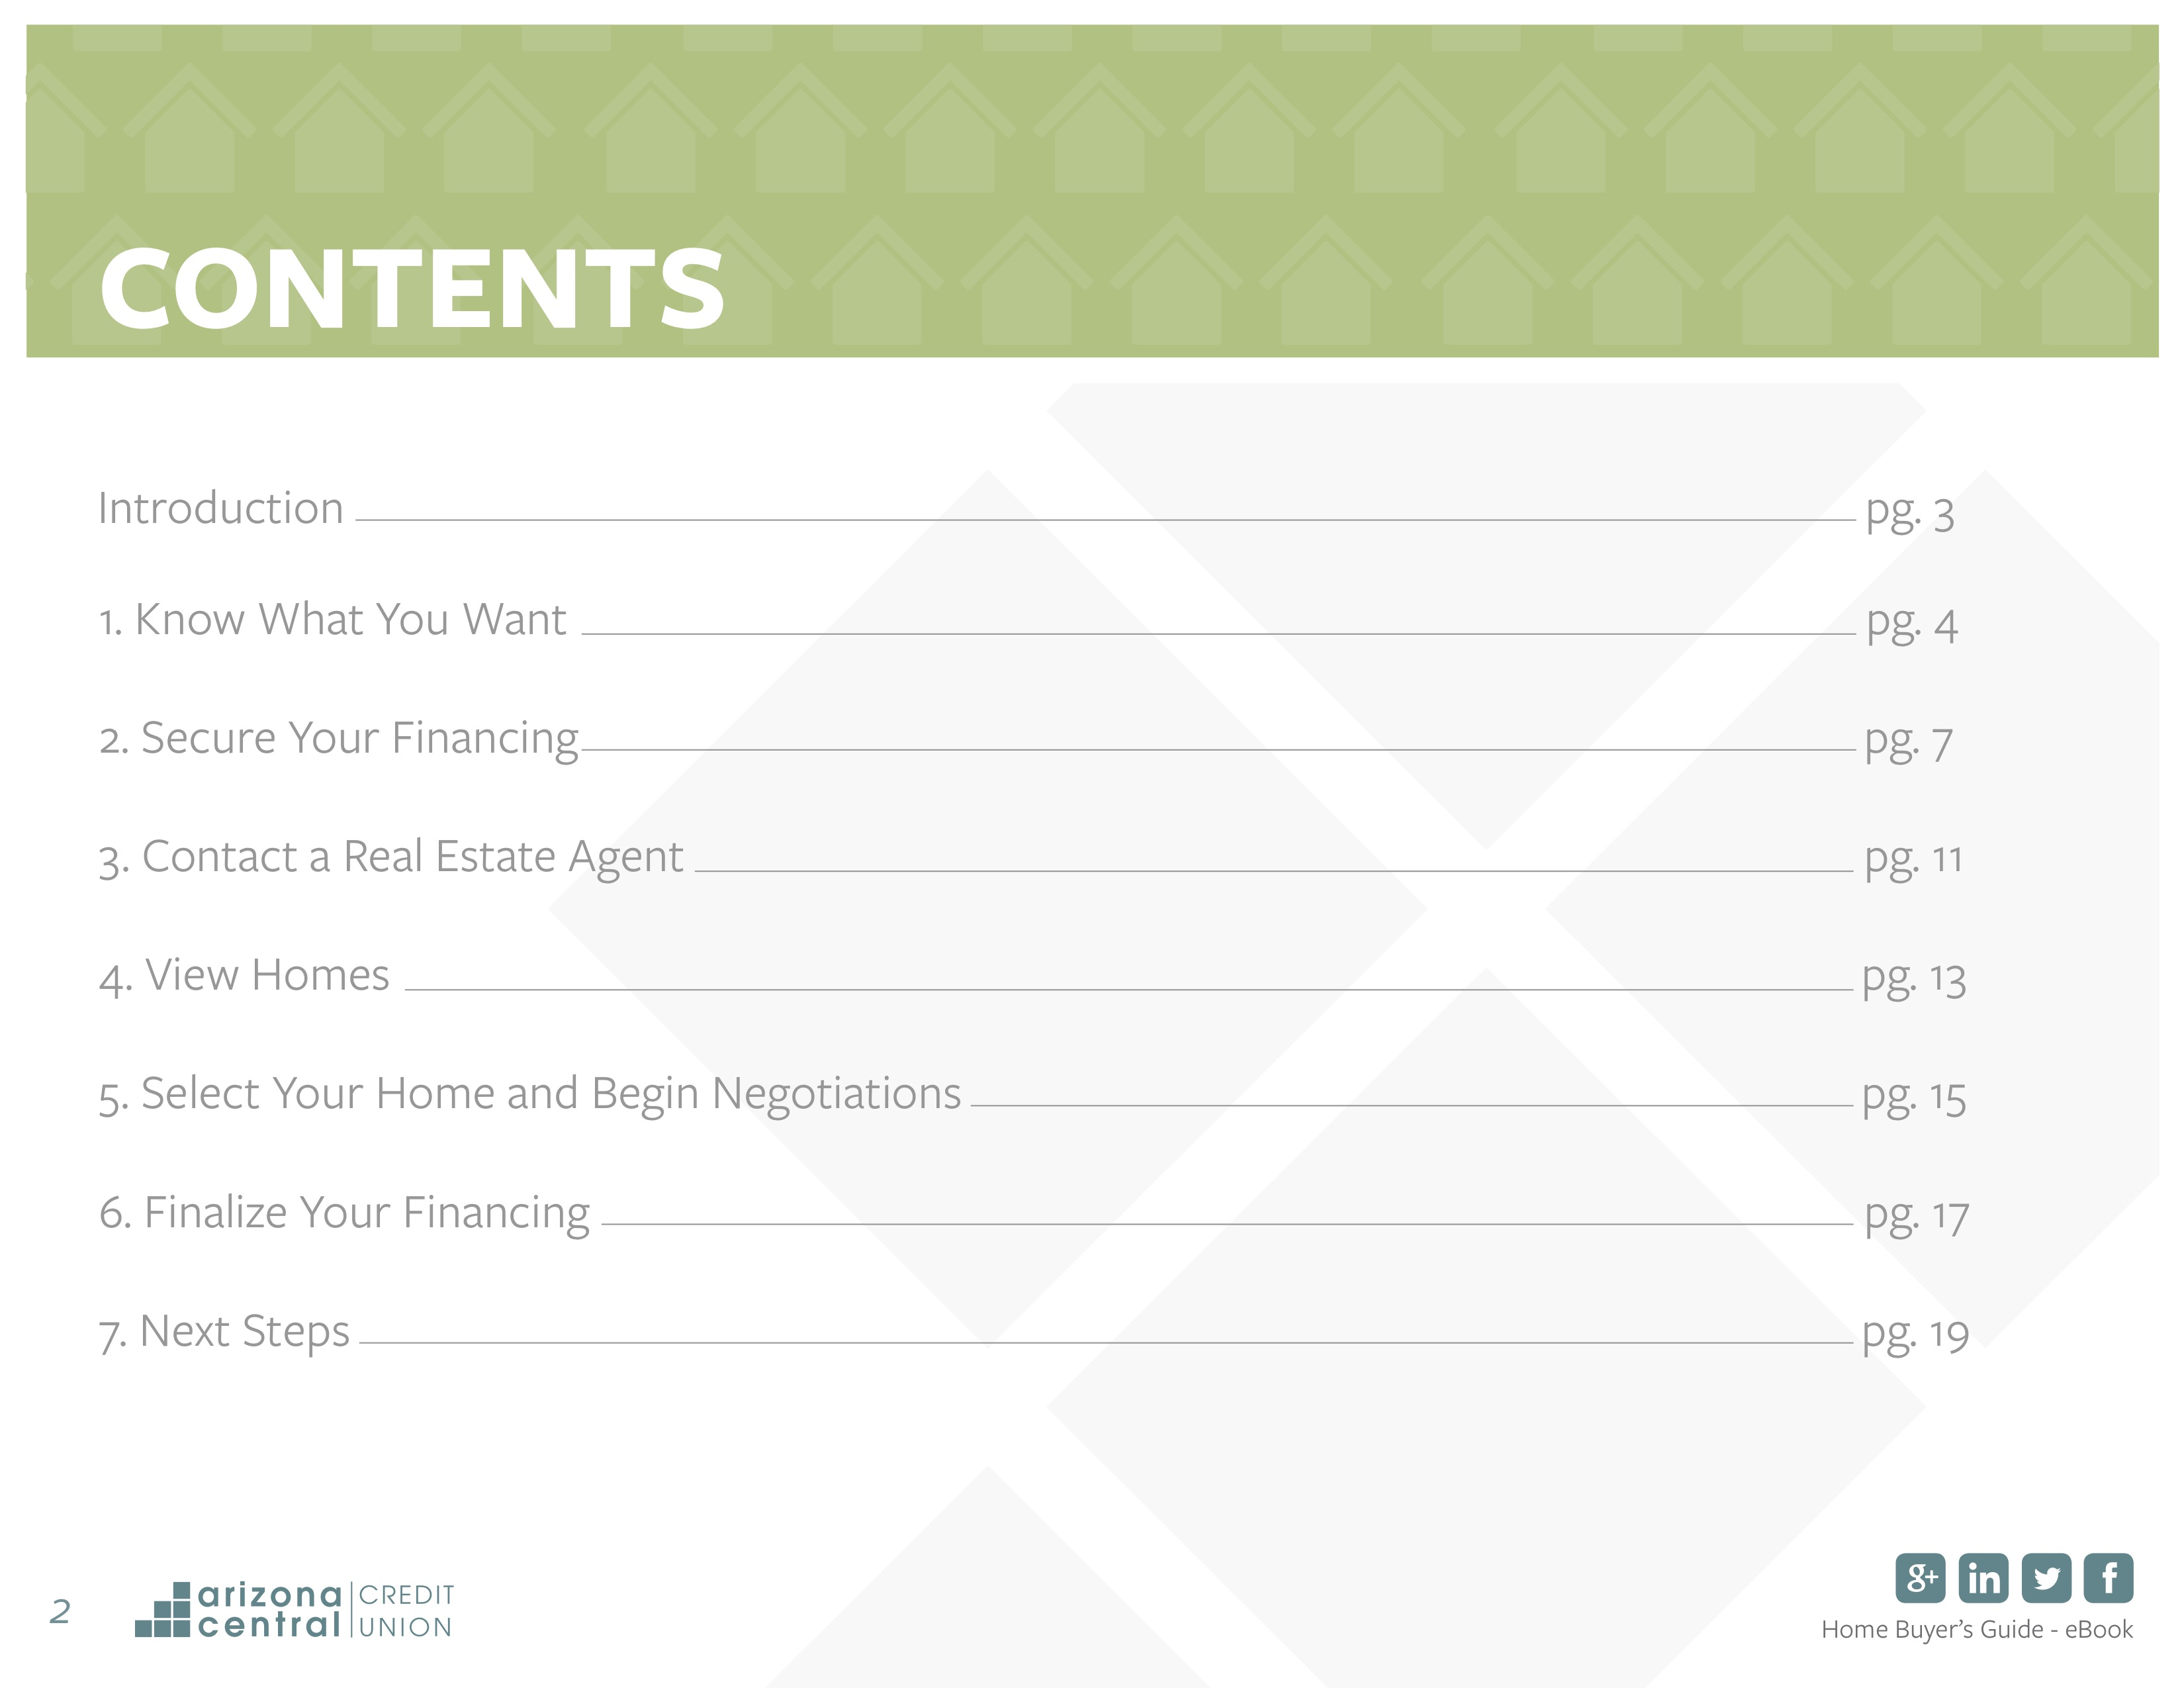 26939_ACCU_Home_Buyers_eBook_Page2